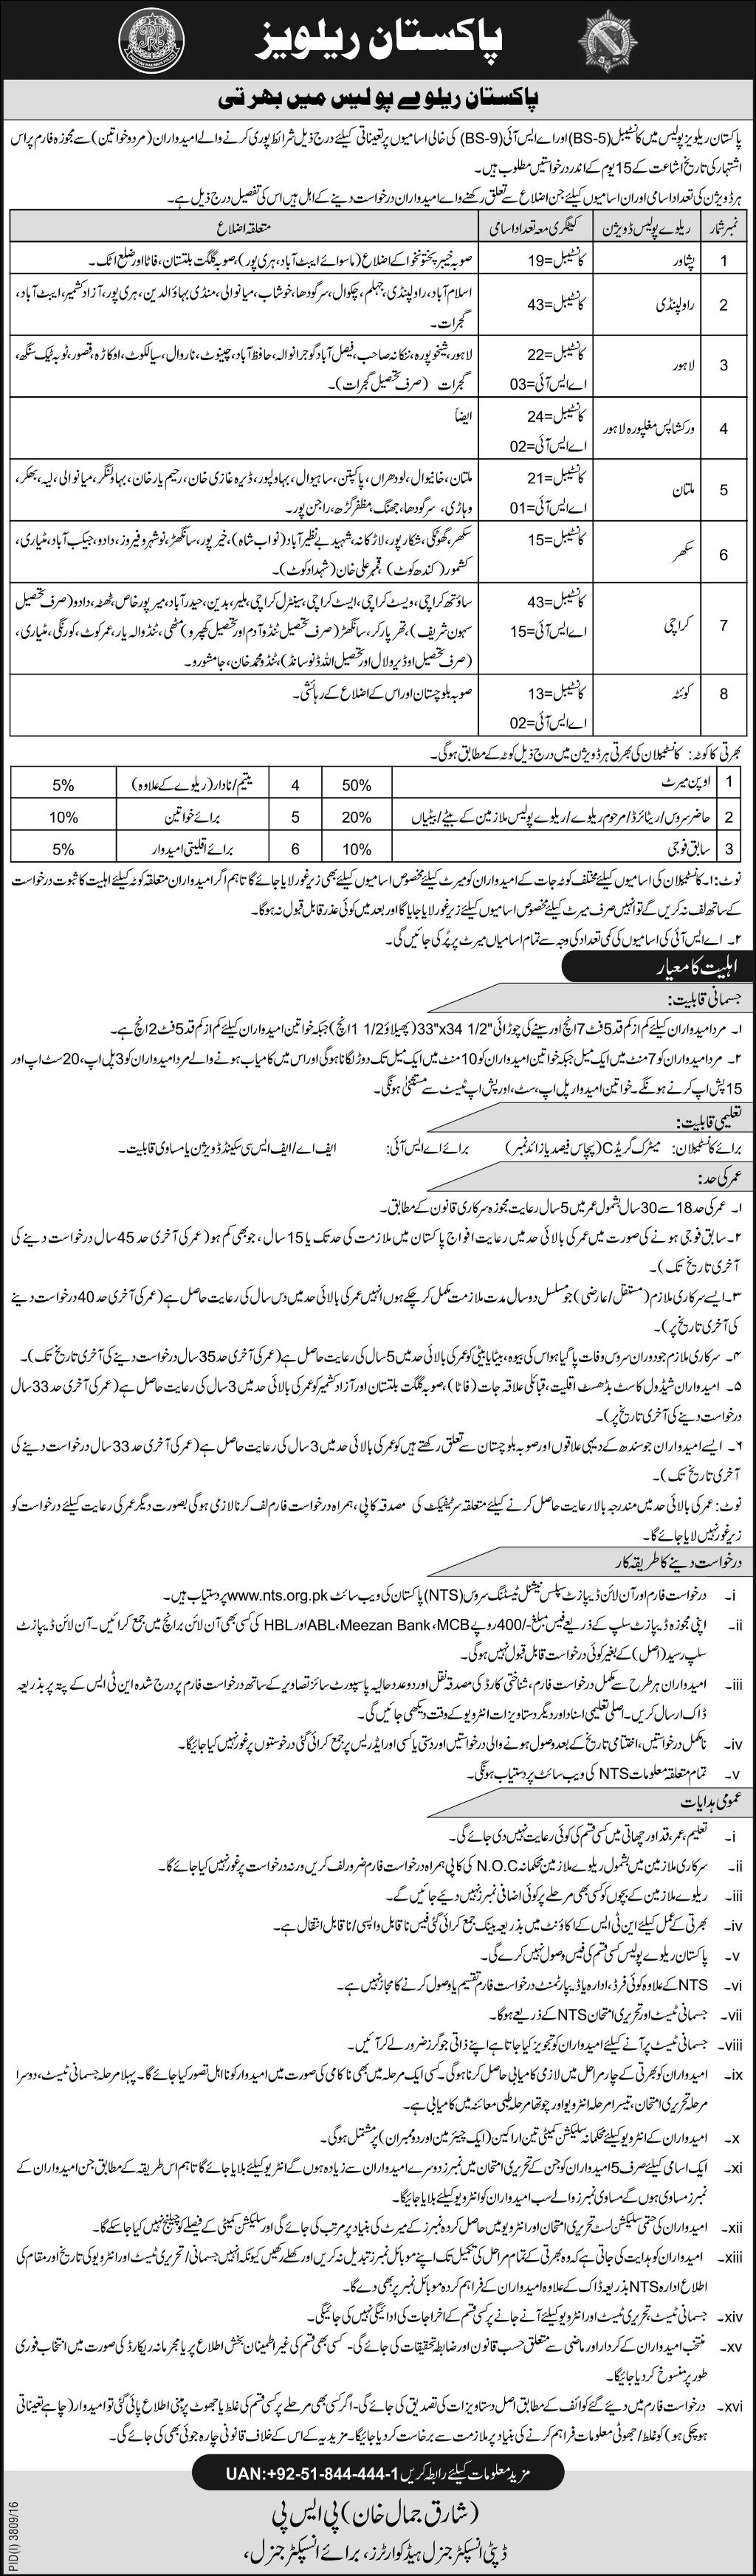 railway police jobs asi application form railway police jobs 2017 asi application form